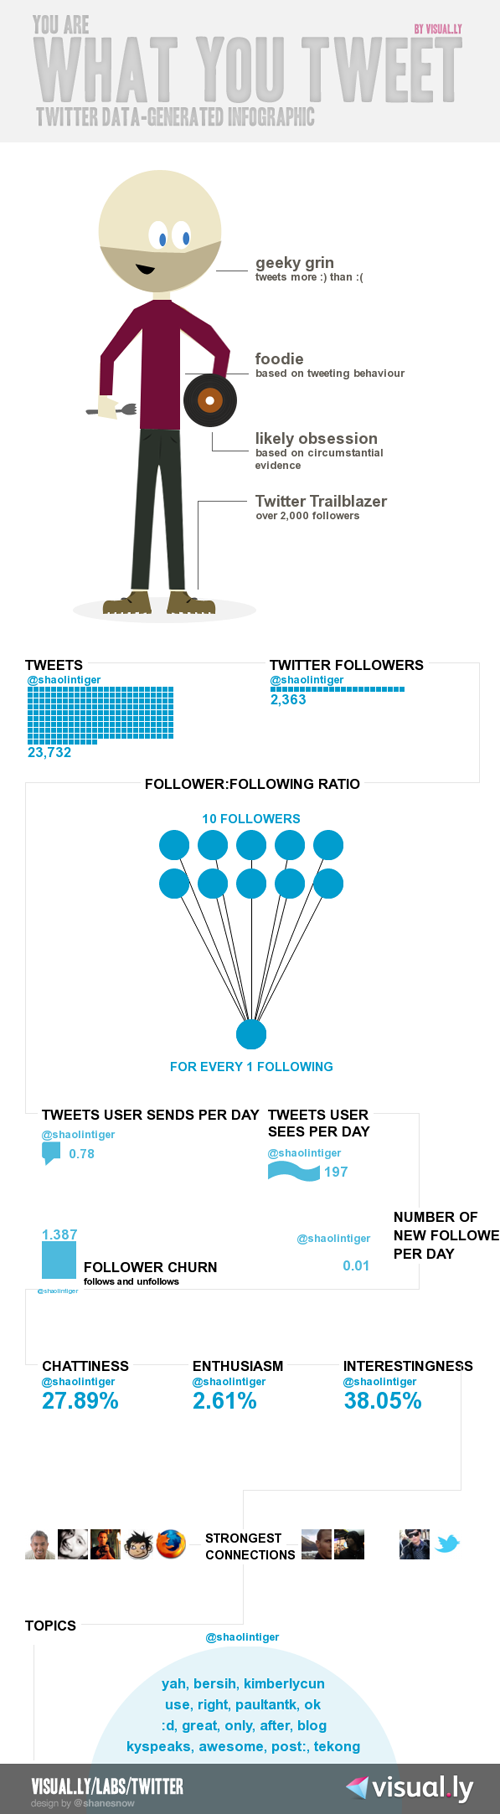 @ShaolinTiger Twitter Infographic